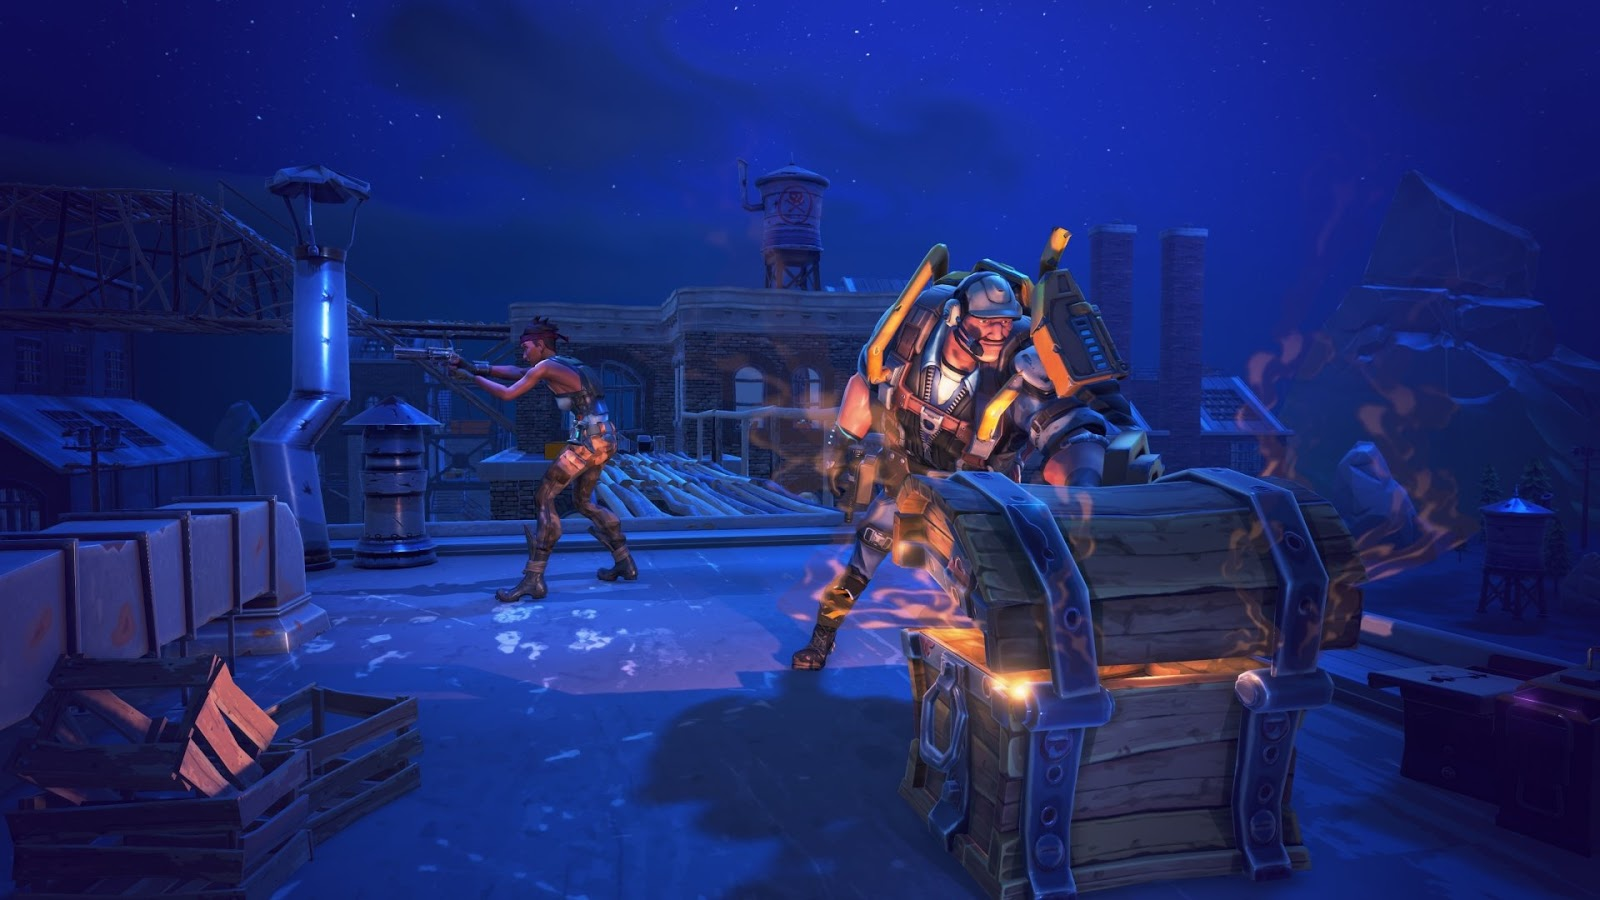 16 Hd Fortnite Game Wallpapers